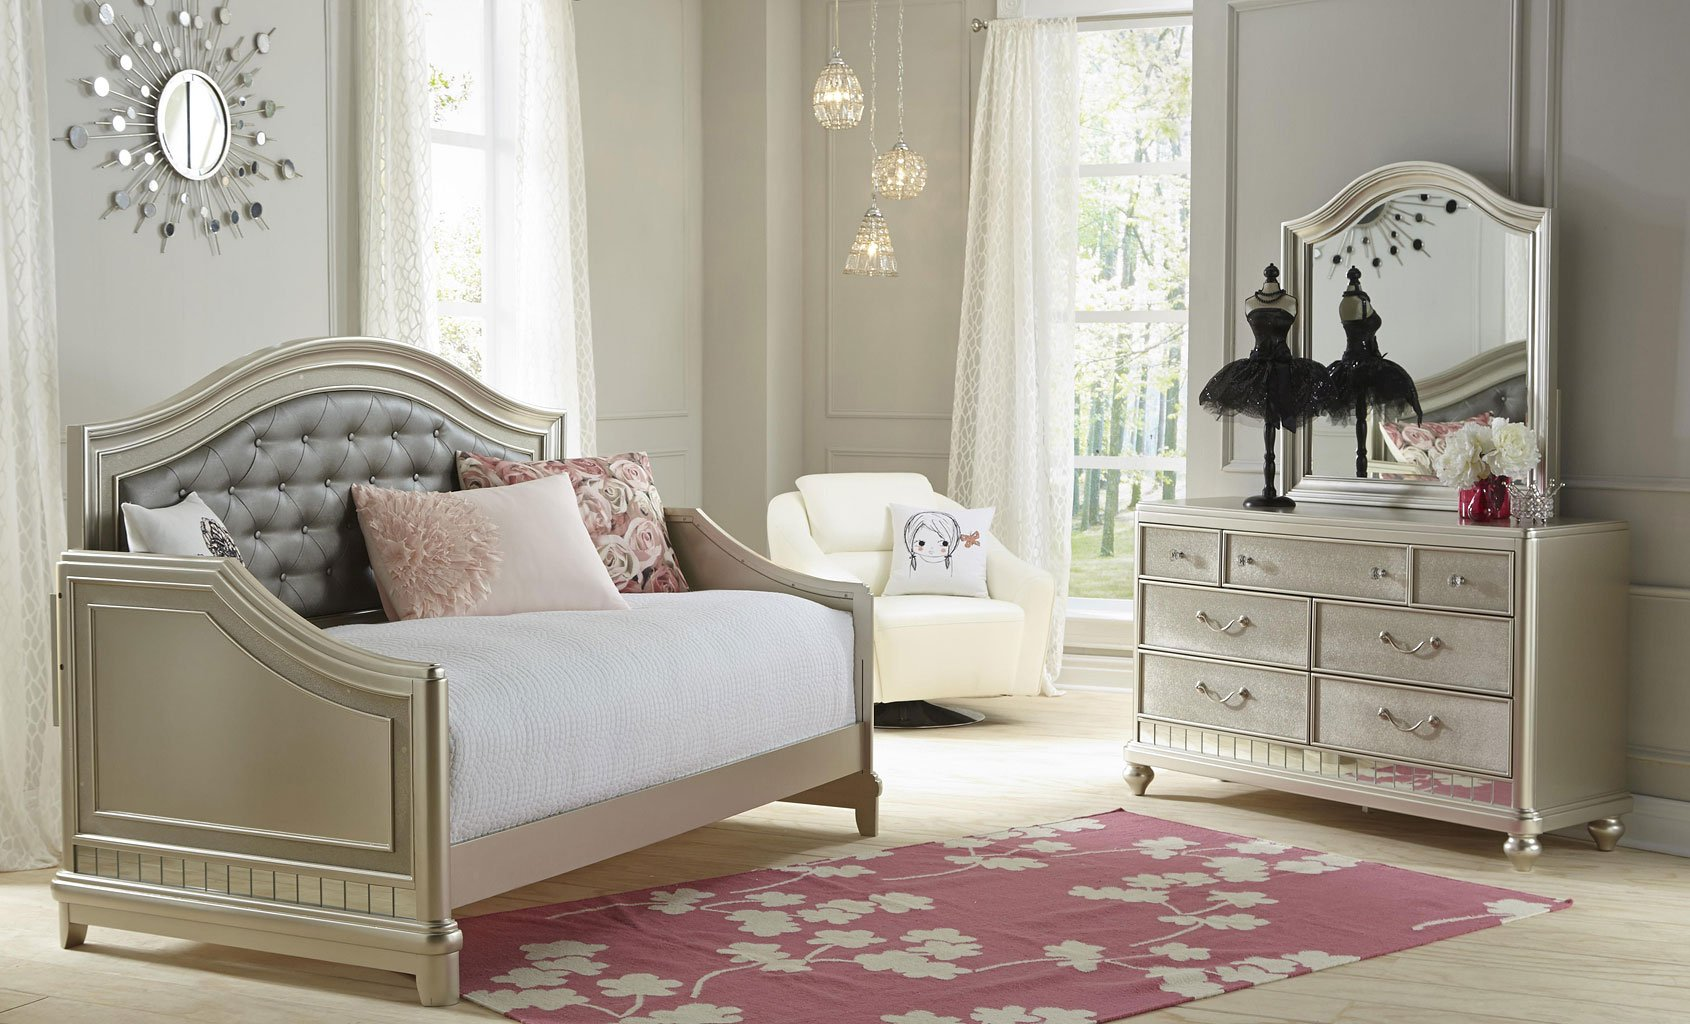 lil diva daybed bedroom set - kids room sets - kids and youth furniture - kids room